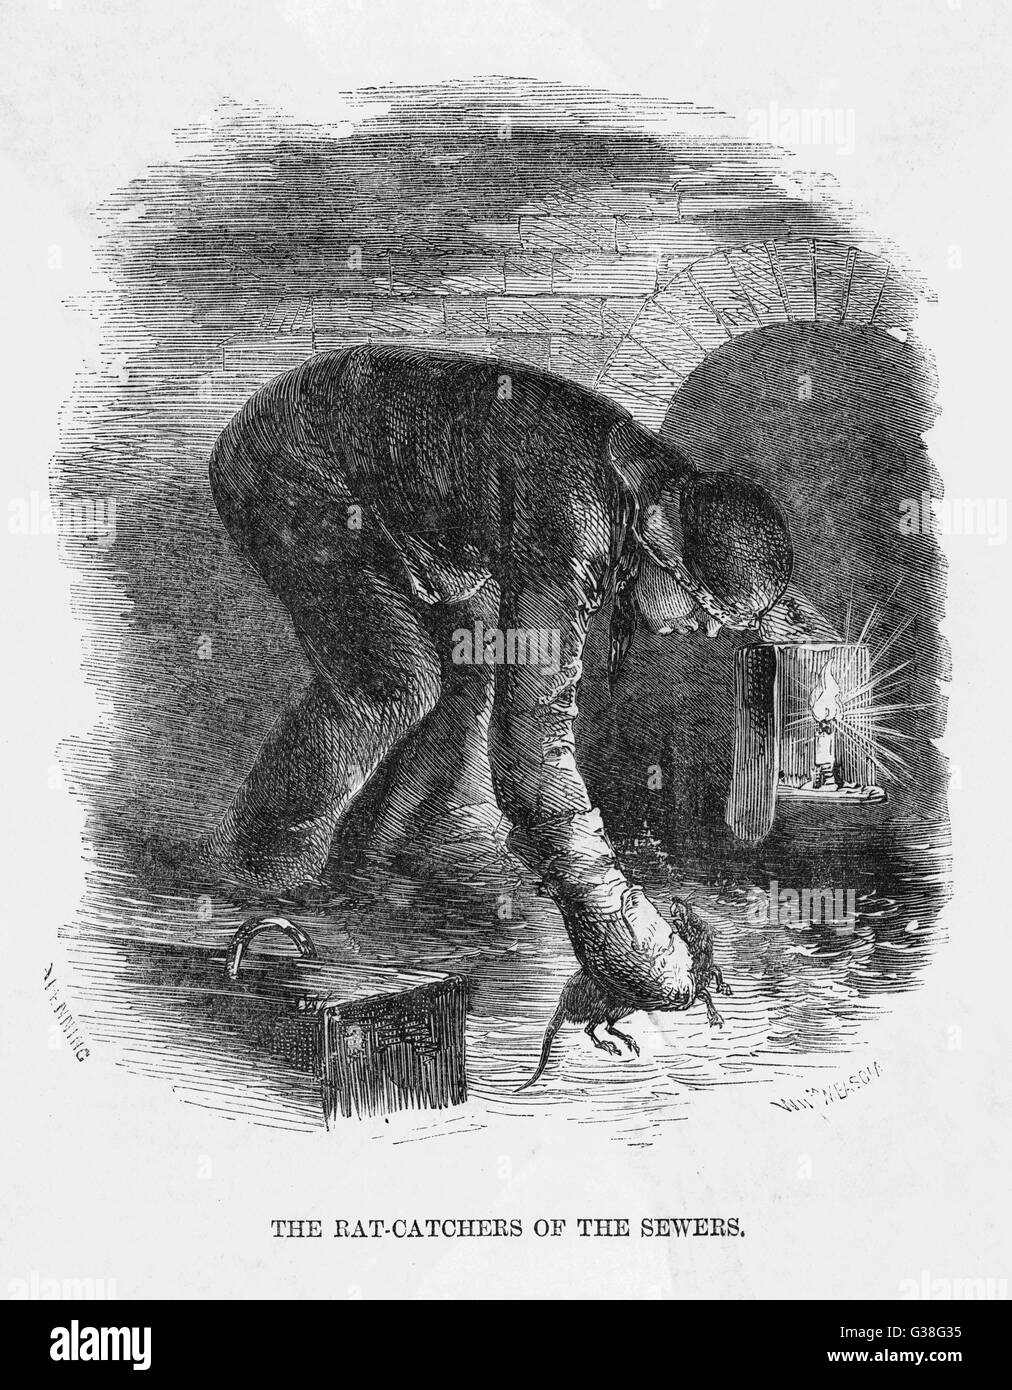 A rat-catcher at work in the  London sewers        Date: circa 1850 - Stock Image